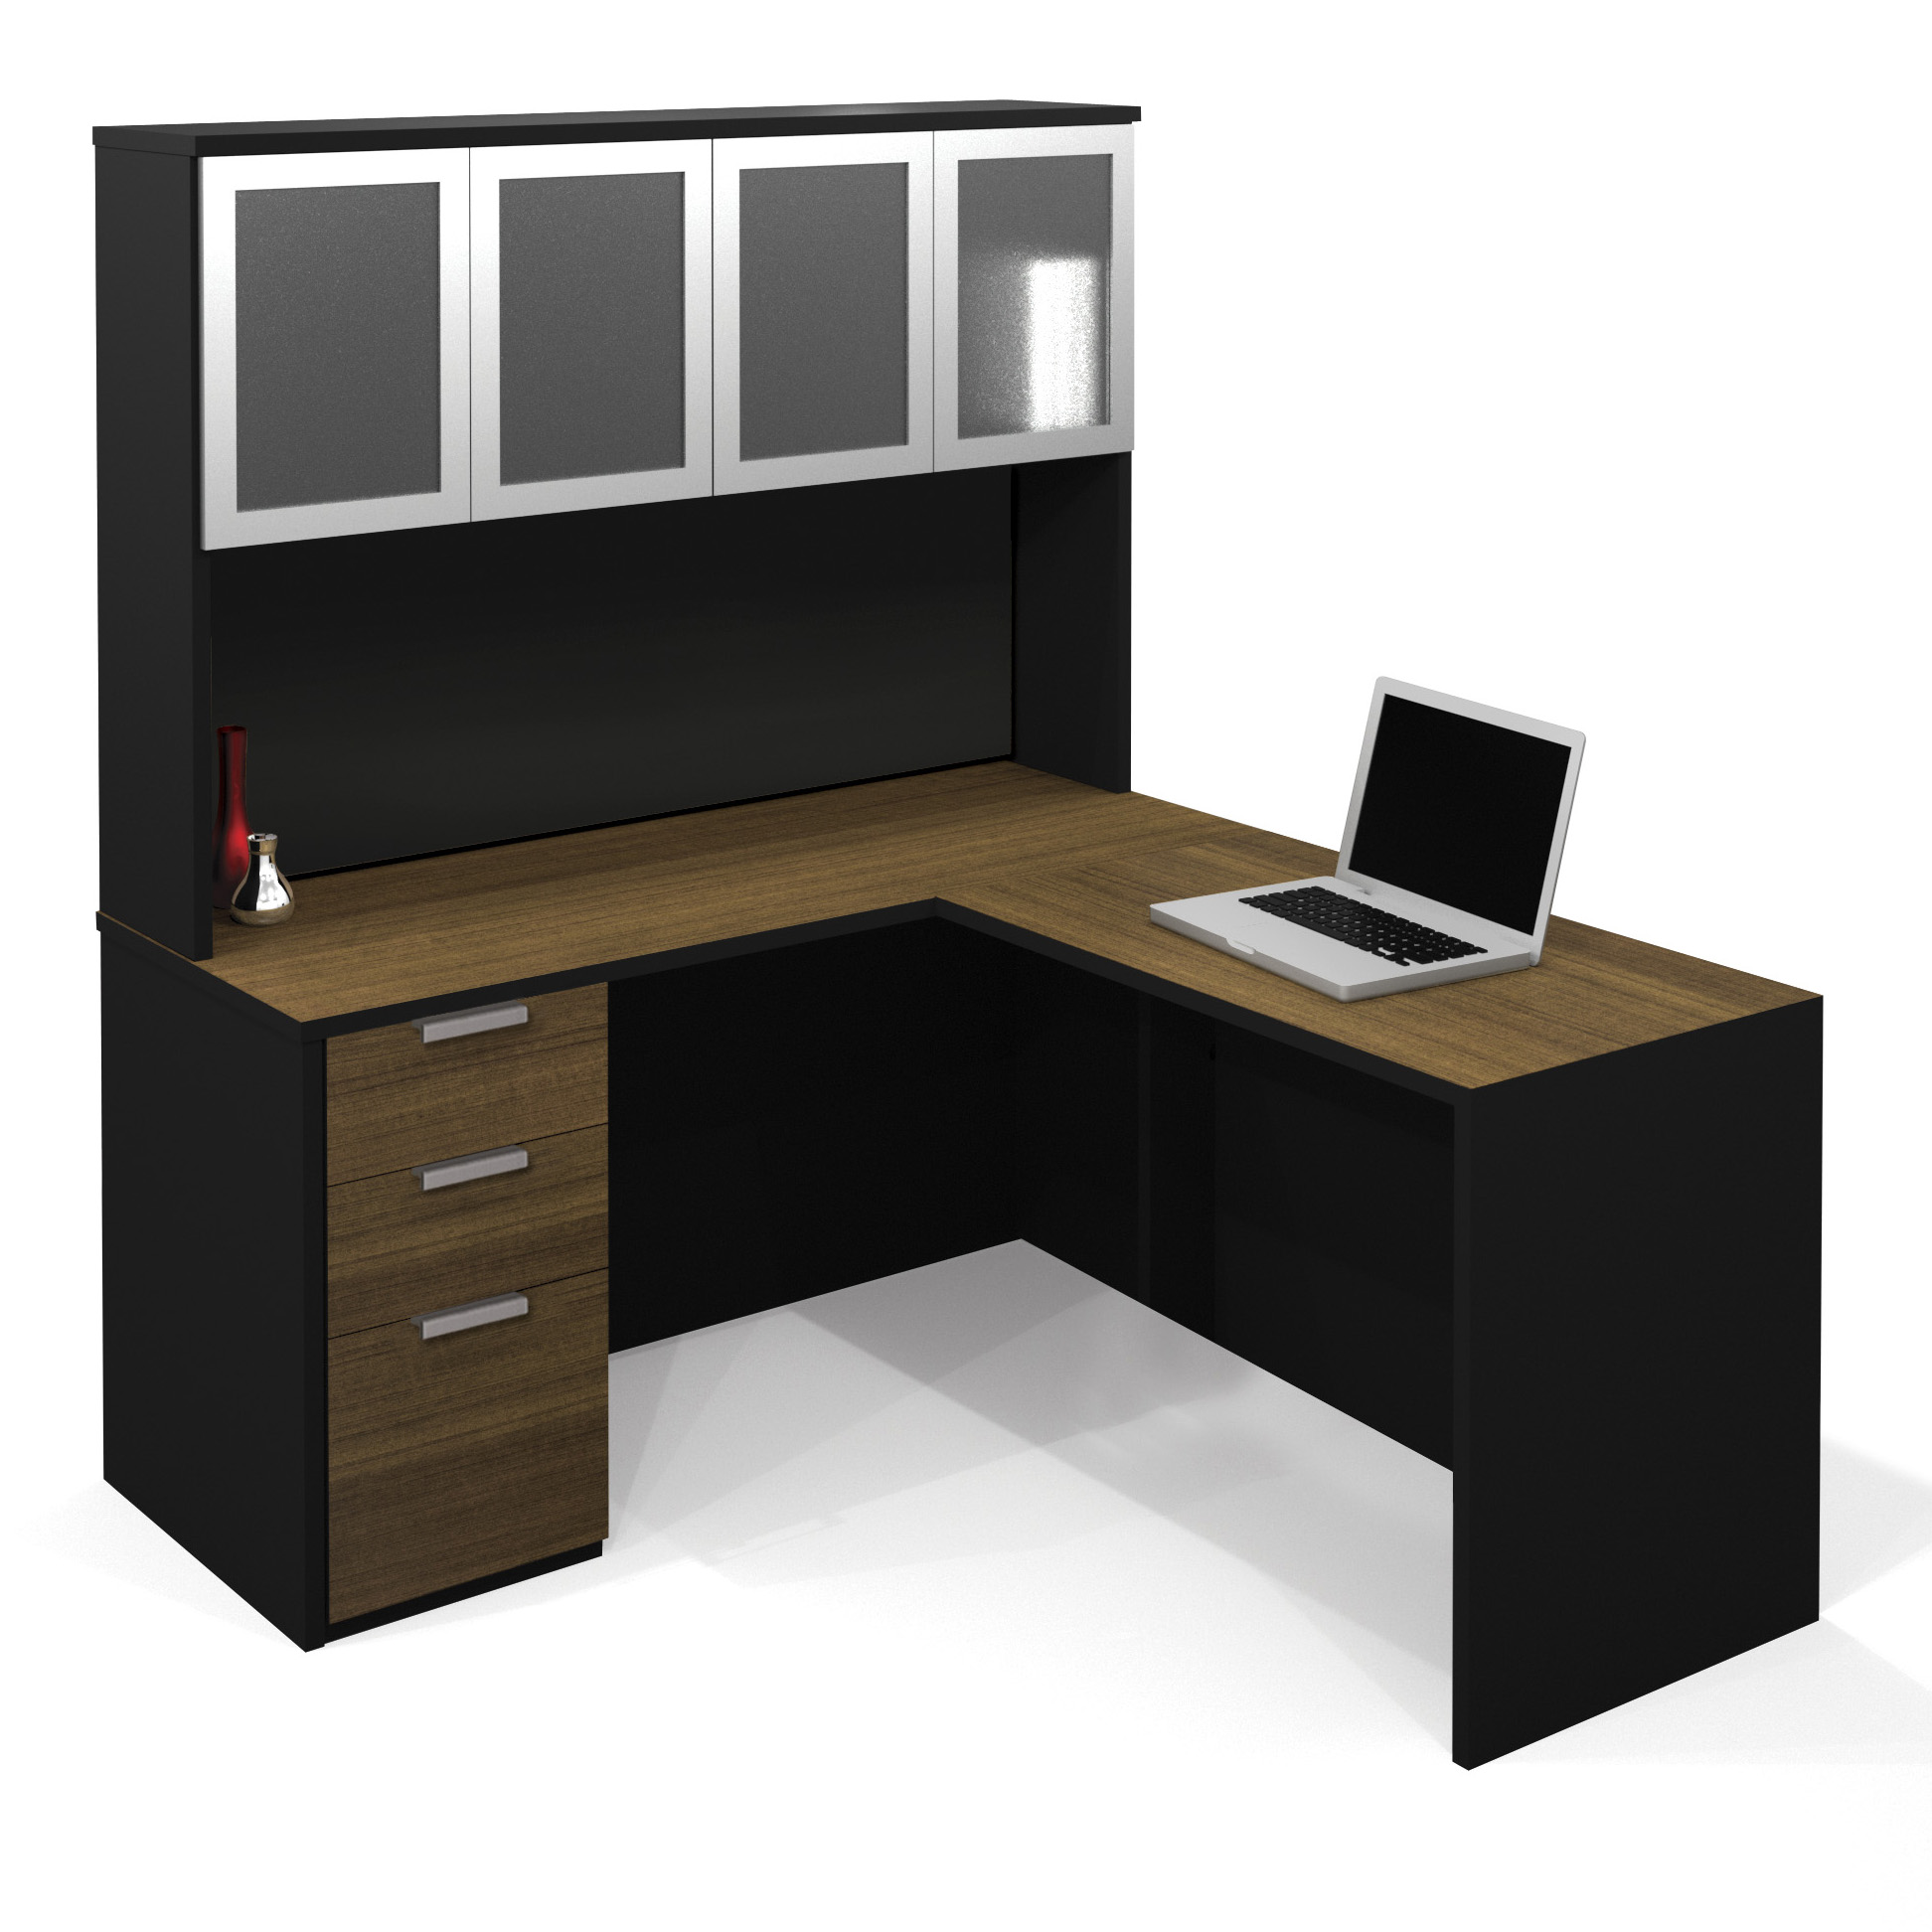 Bestar Pro Concept L Shaped Desk with Hutch and storage plus laptop for home office furniture ideas